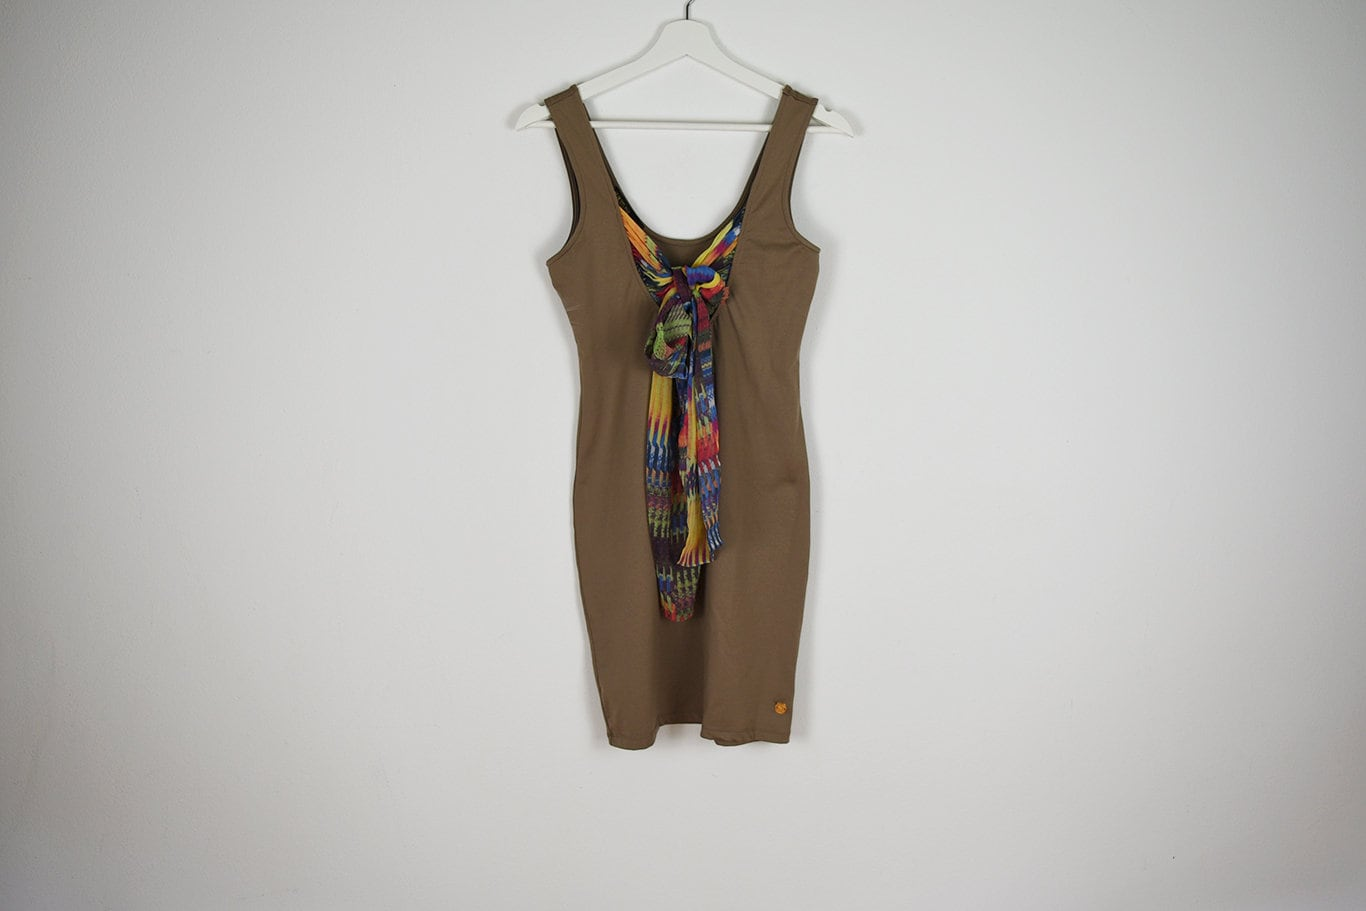 Vintage Scarf Styles -1920s to 1960s Vintage Tan Stretchy Bodycon Mini Dress With Attached Scarf $39.18 AT vintagedancer.com